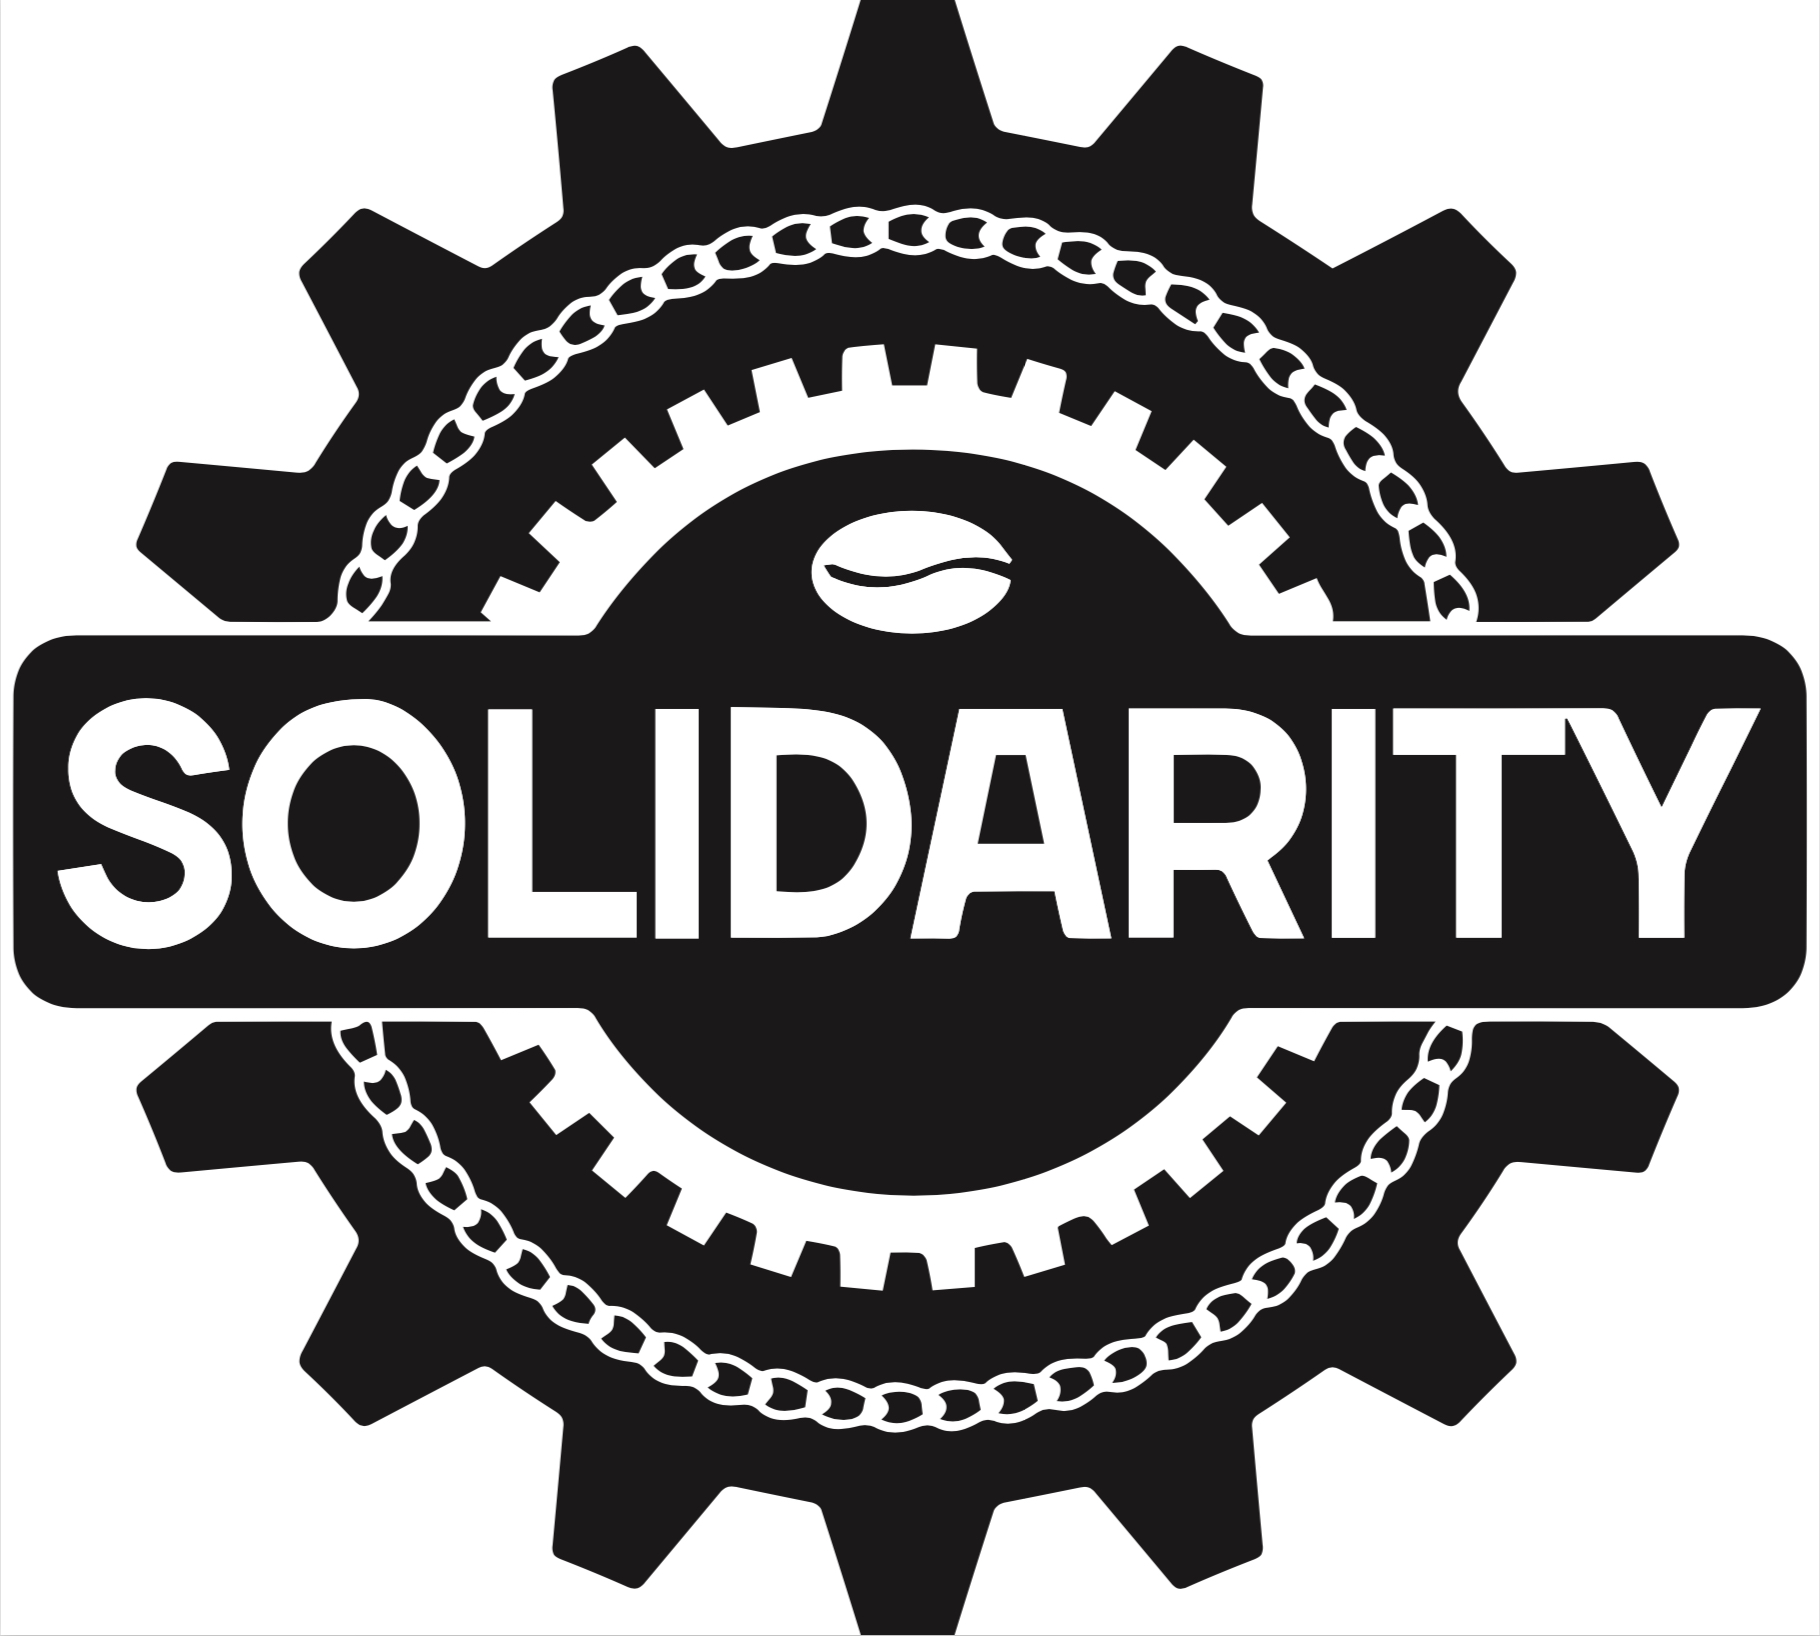 Solidarity Roasters logo